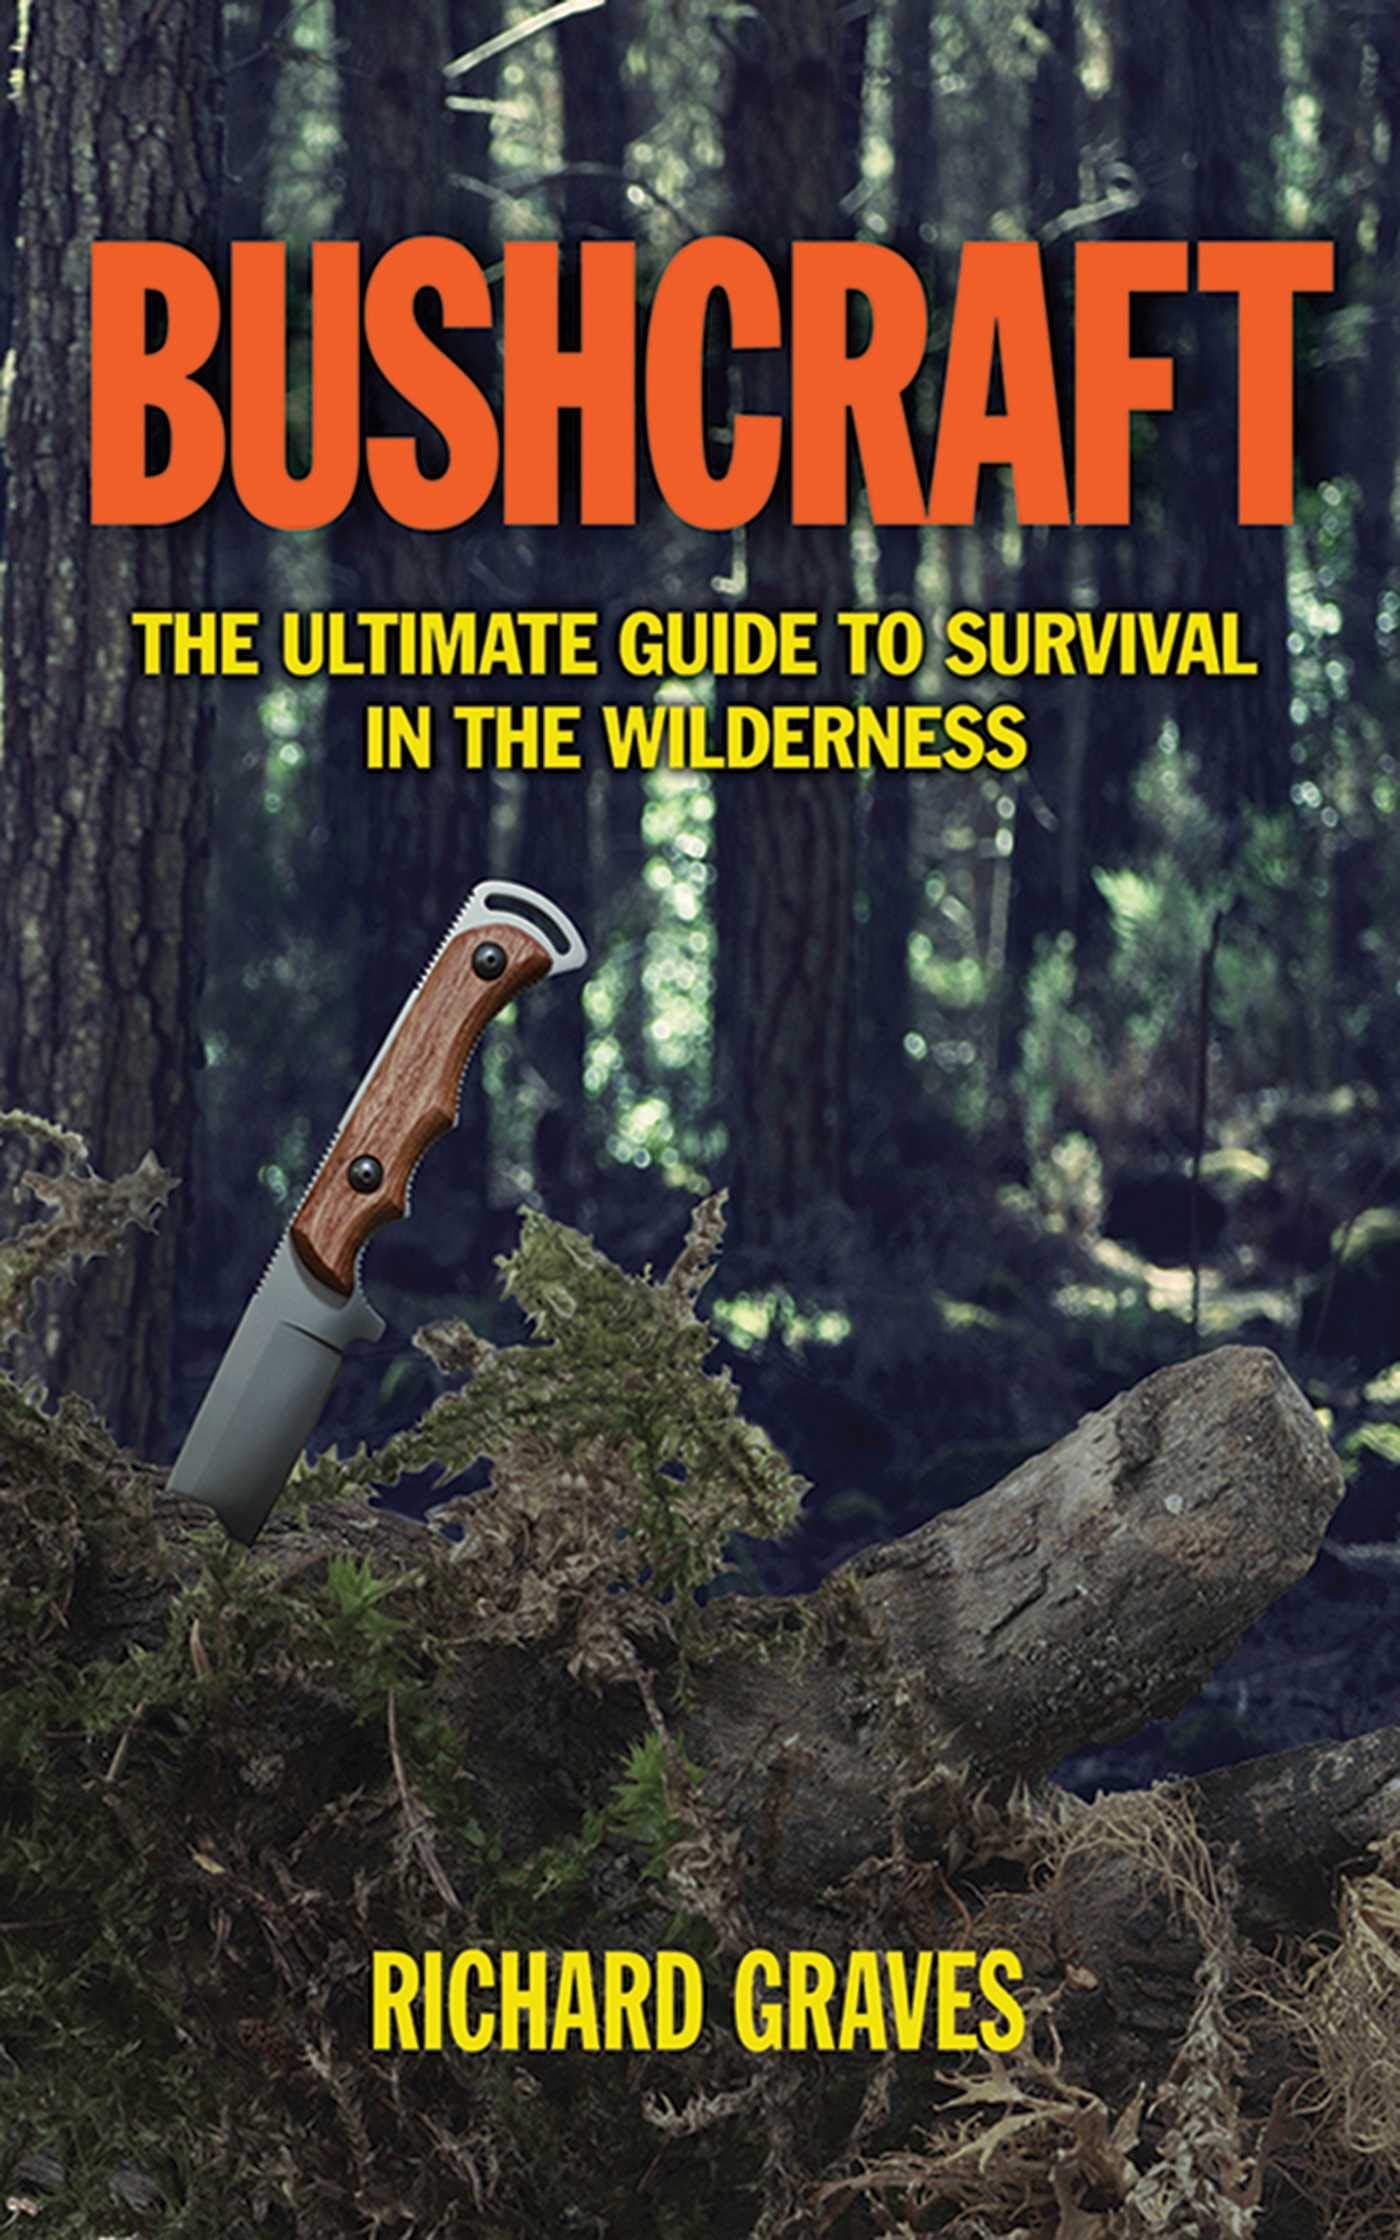 Bushcraft: The Ultimate Guide to Survival in the Wilderness by Skyhorse